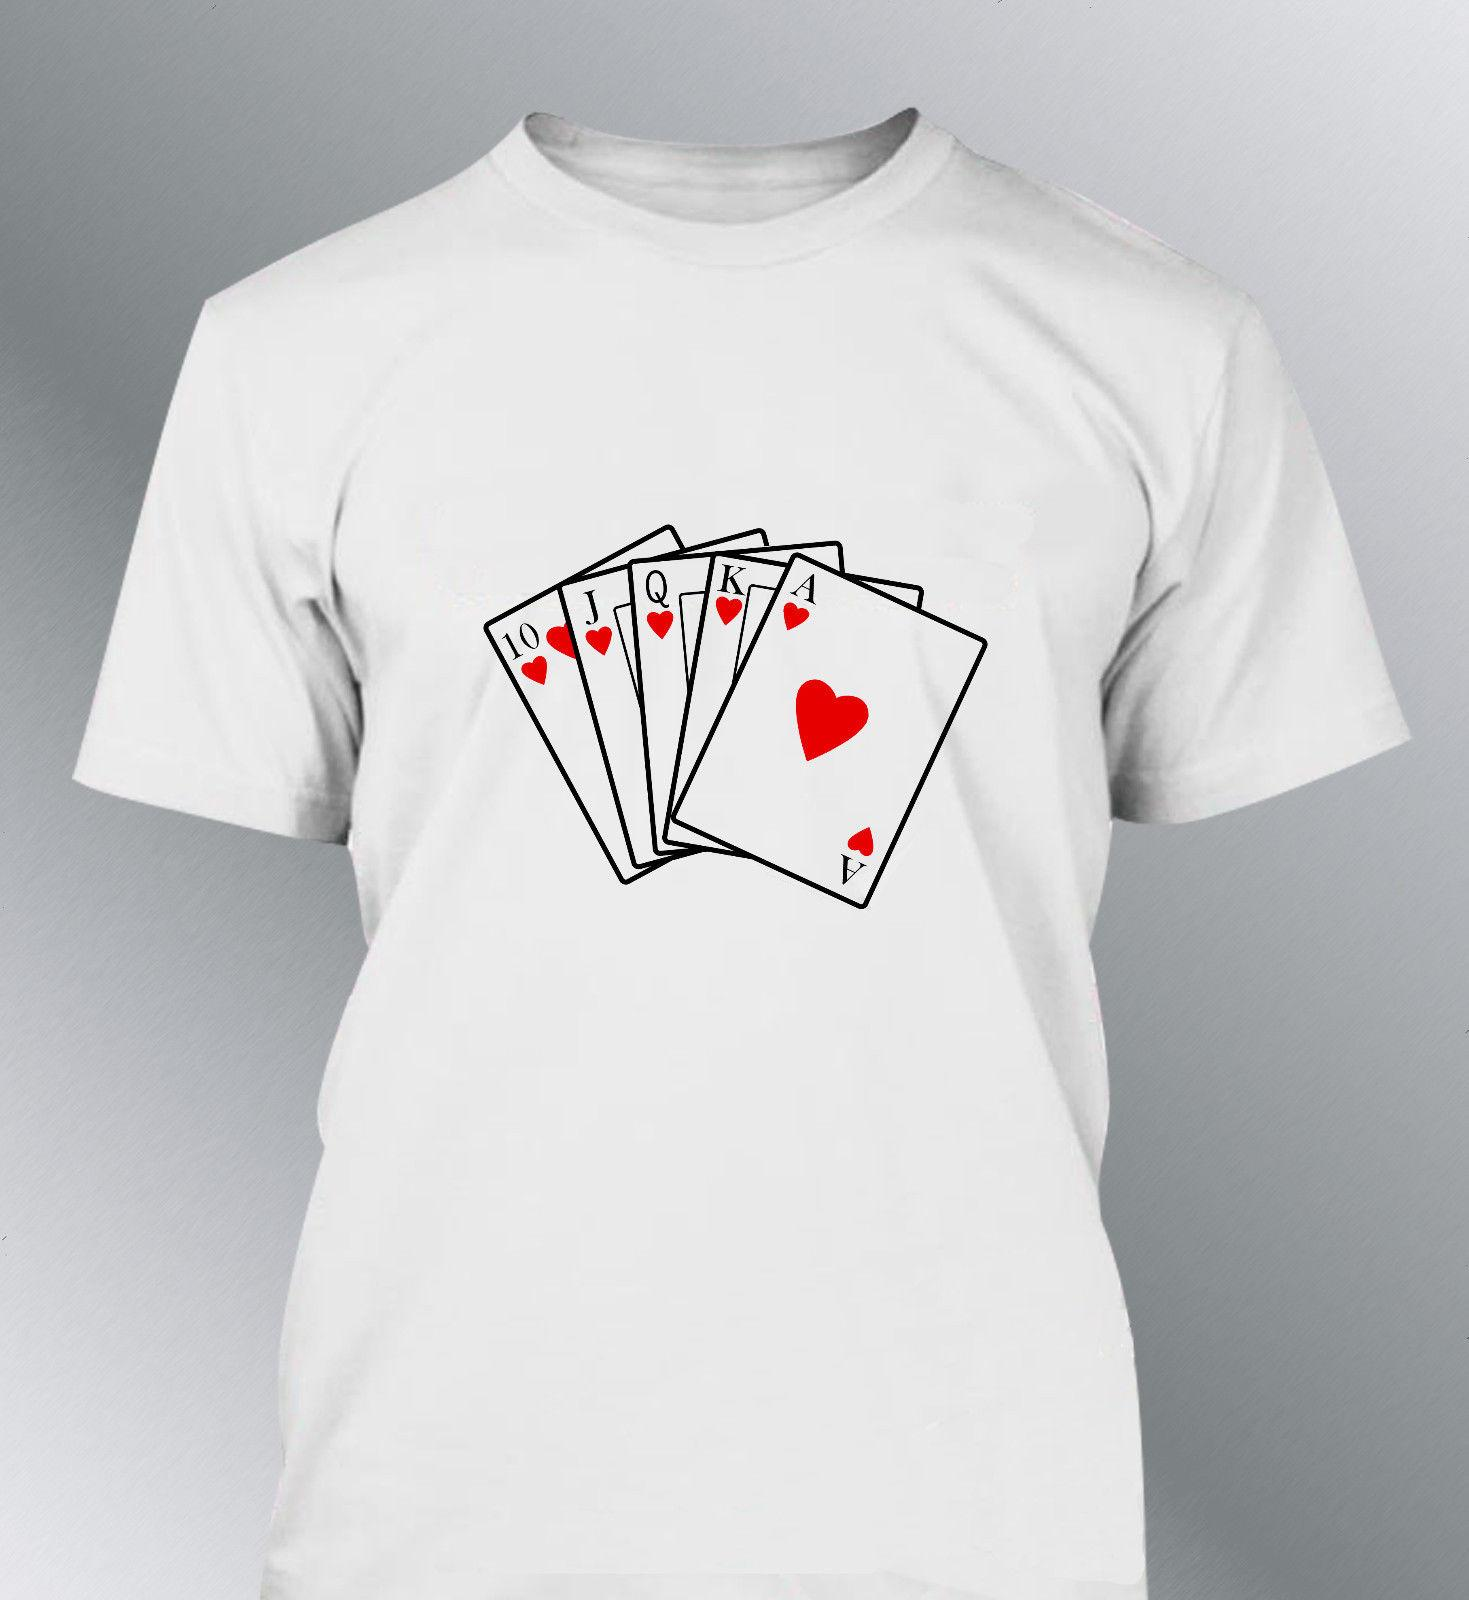 6306053c2ee8 Tee Shirt Personnalise Poker M L XL XXL Homme Col Rond Funny T Shirts  Prints Funky T Shirt Design From Integrity067